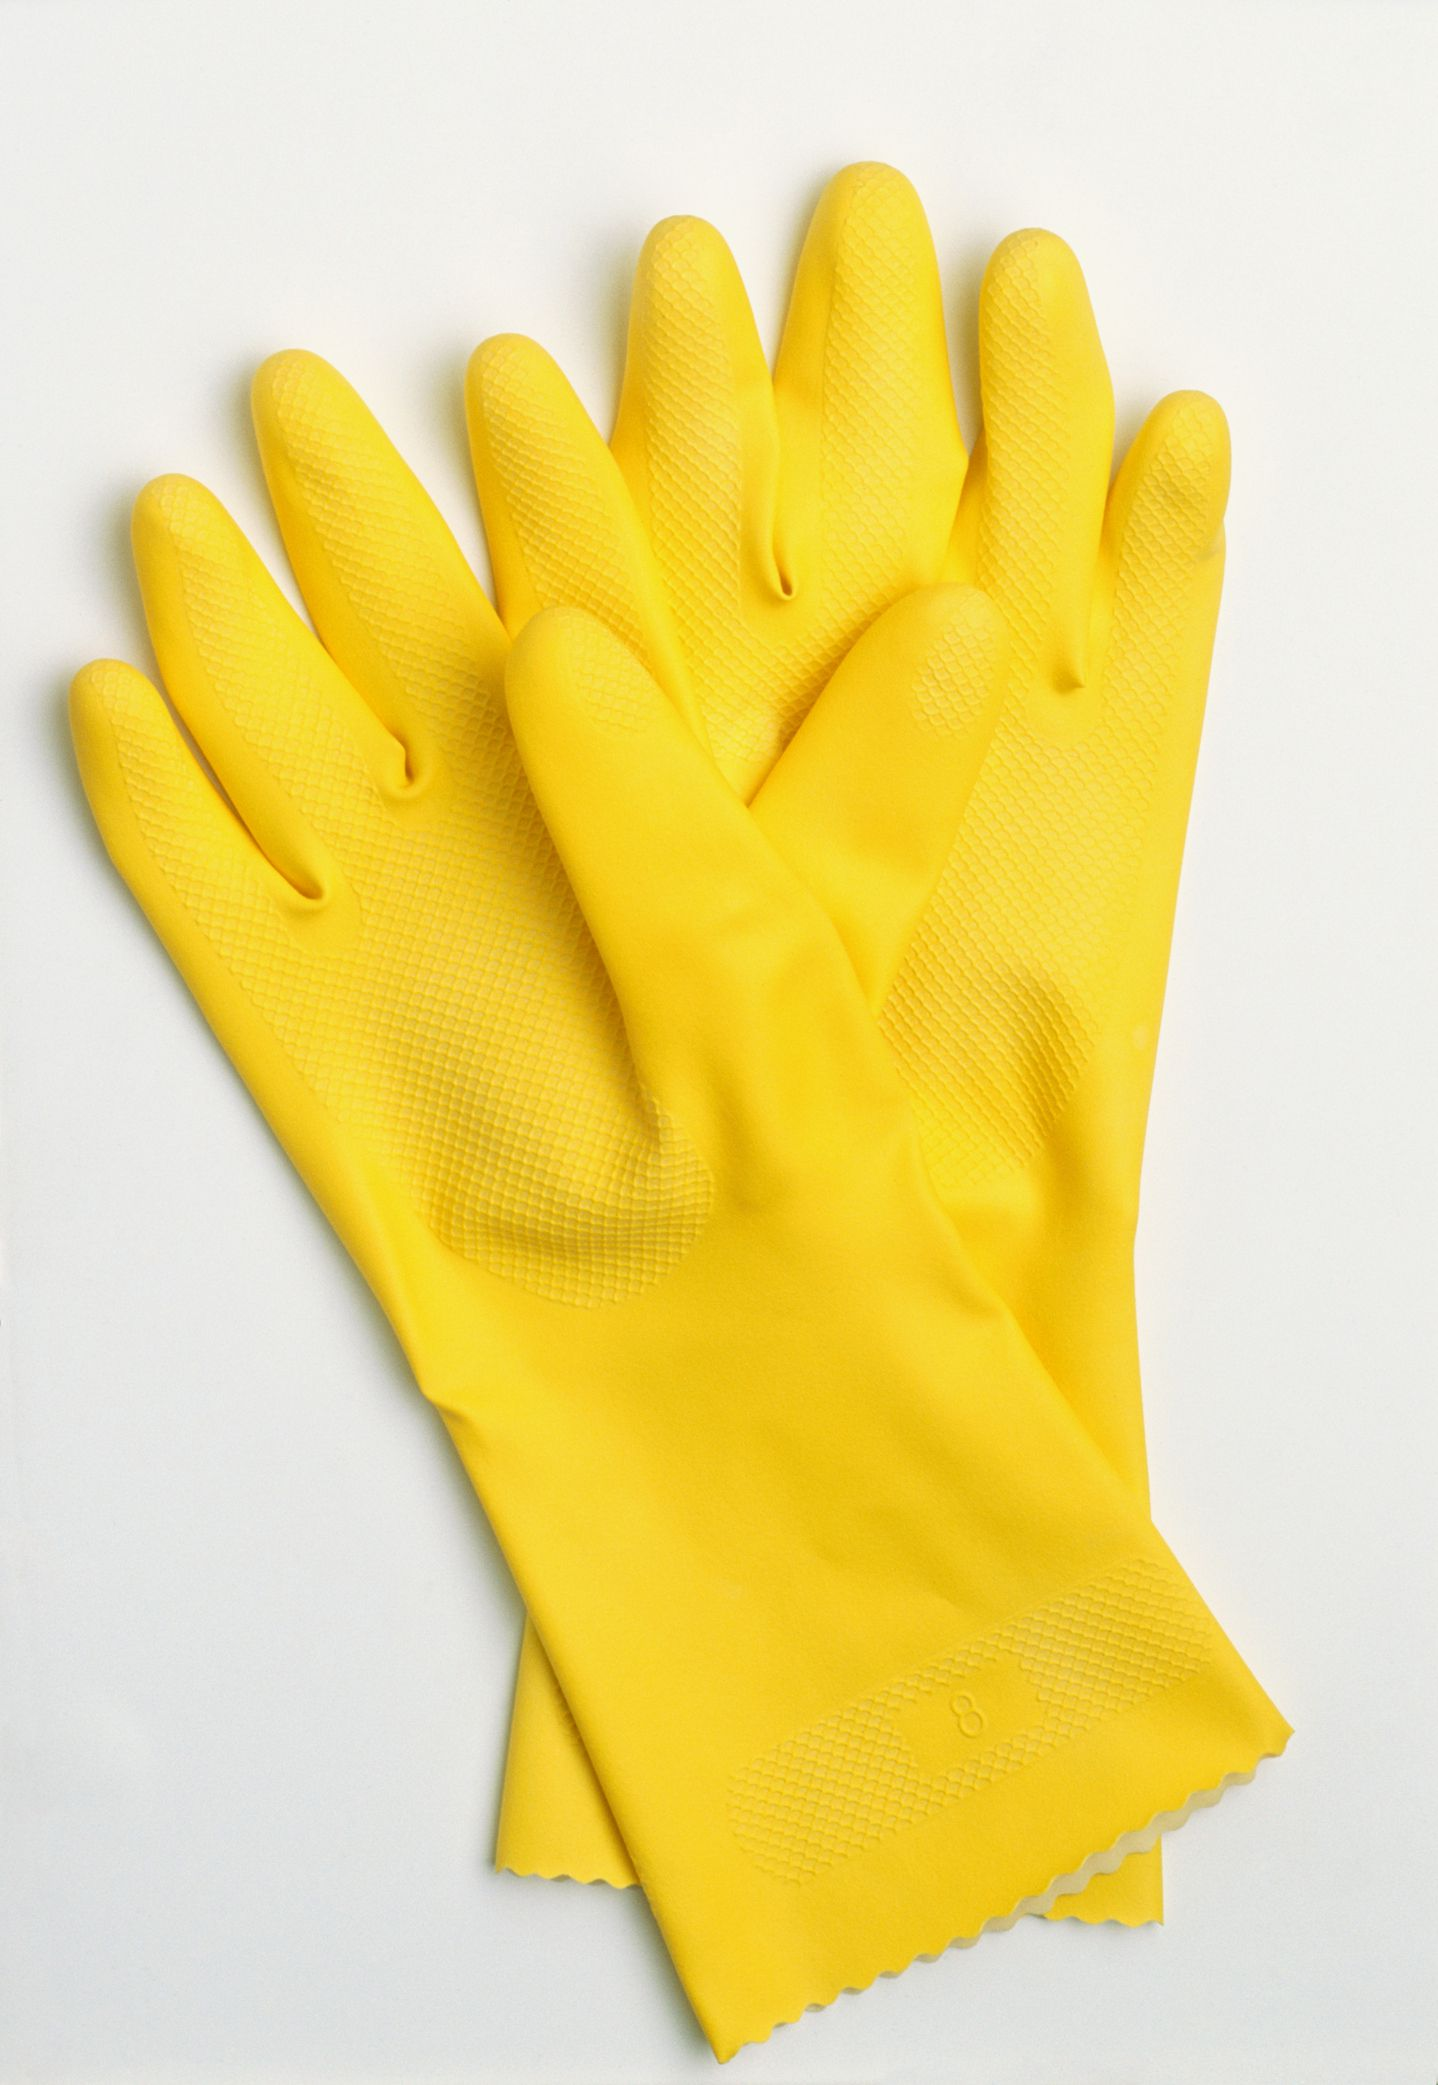 Tips on Getting Rid of Rubber Glove Smell